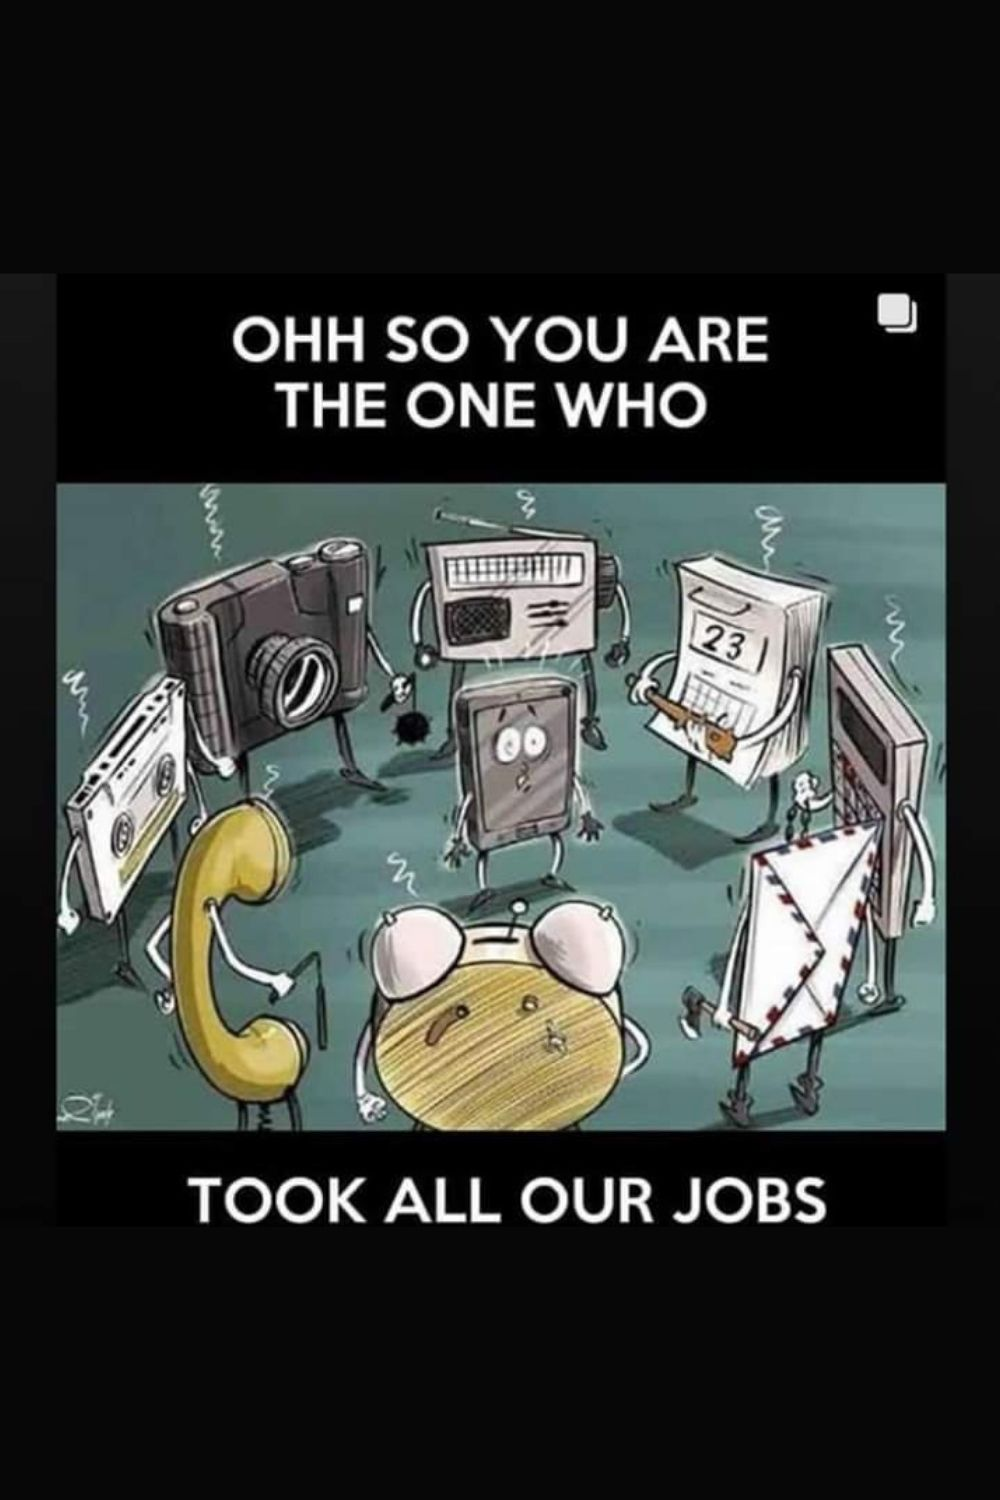 You Took Our Jobs Riseuplabs Riseup Memes Funphoto Funny Technology Solutions Software Development Technology Industry